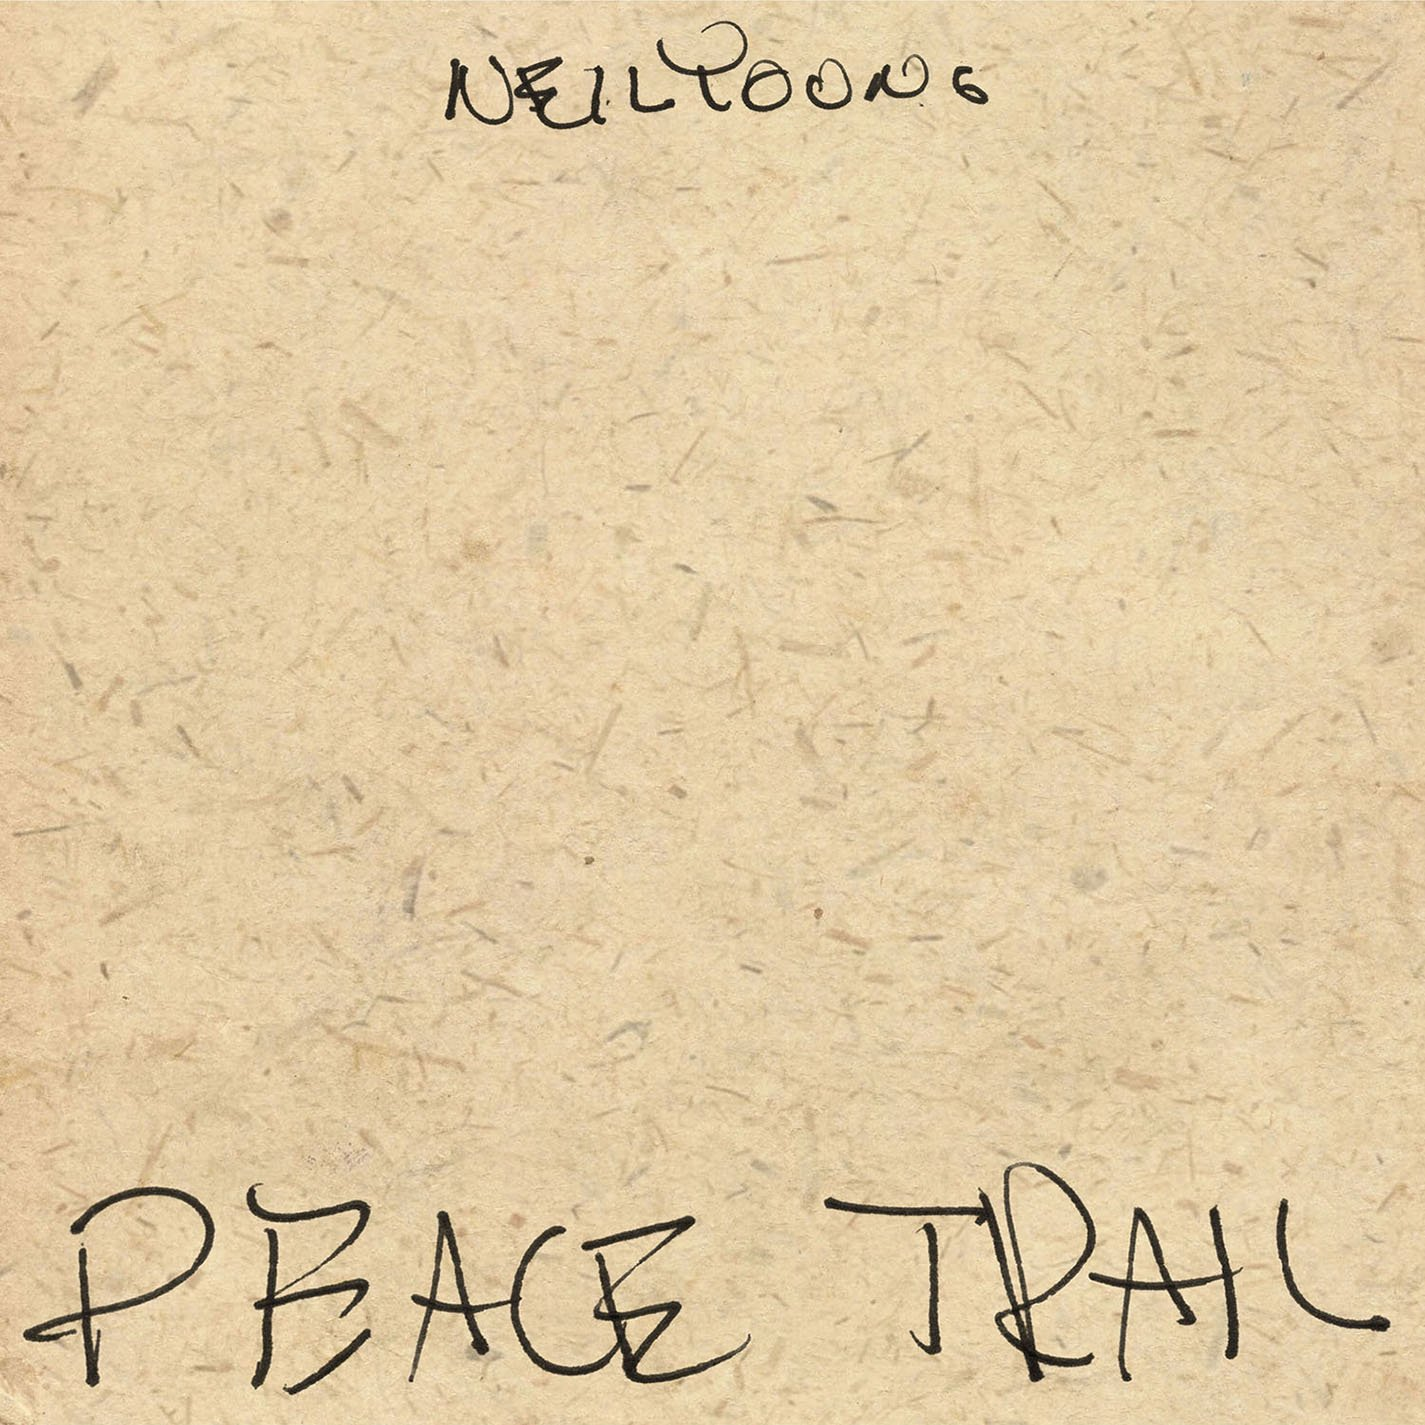 Neil Young - Peace Trail (Cassette)